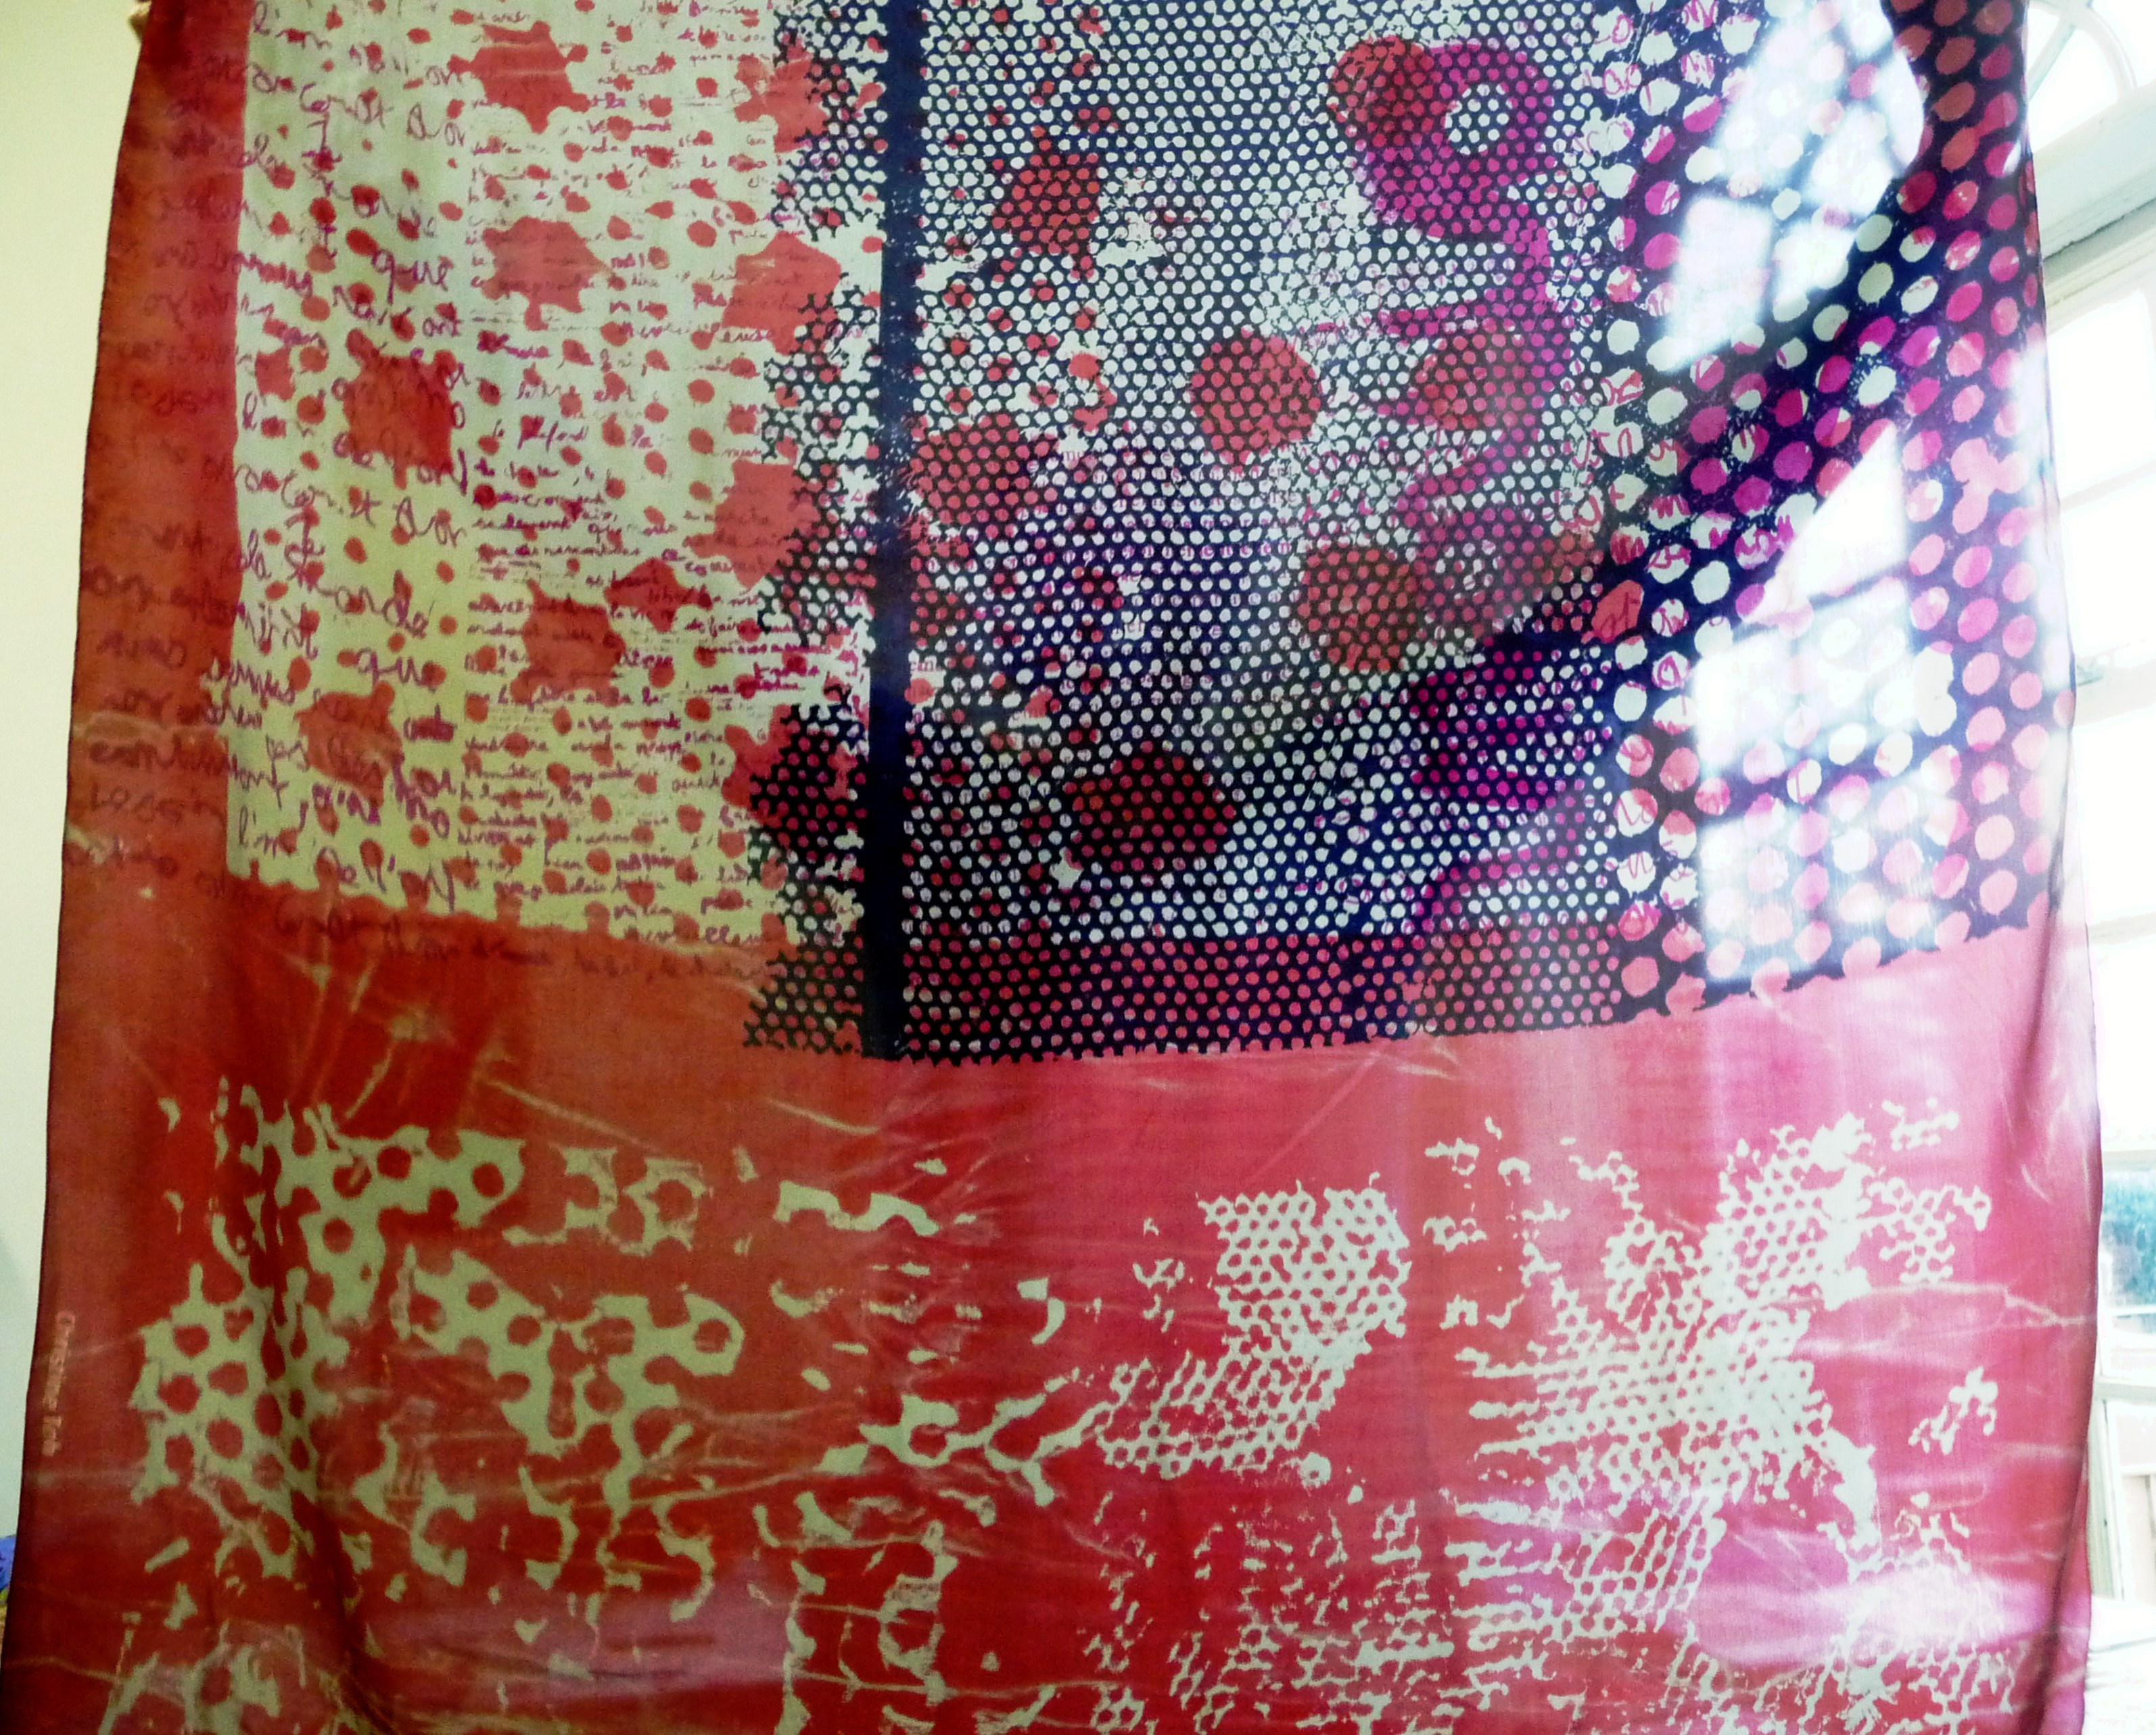 textile by Christine Toh